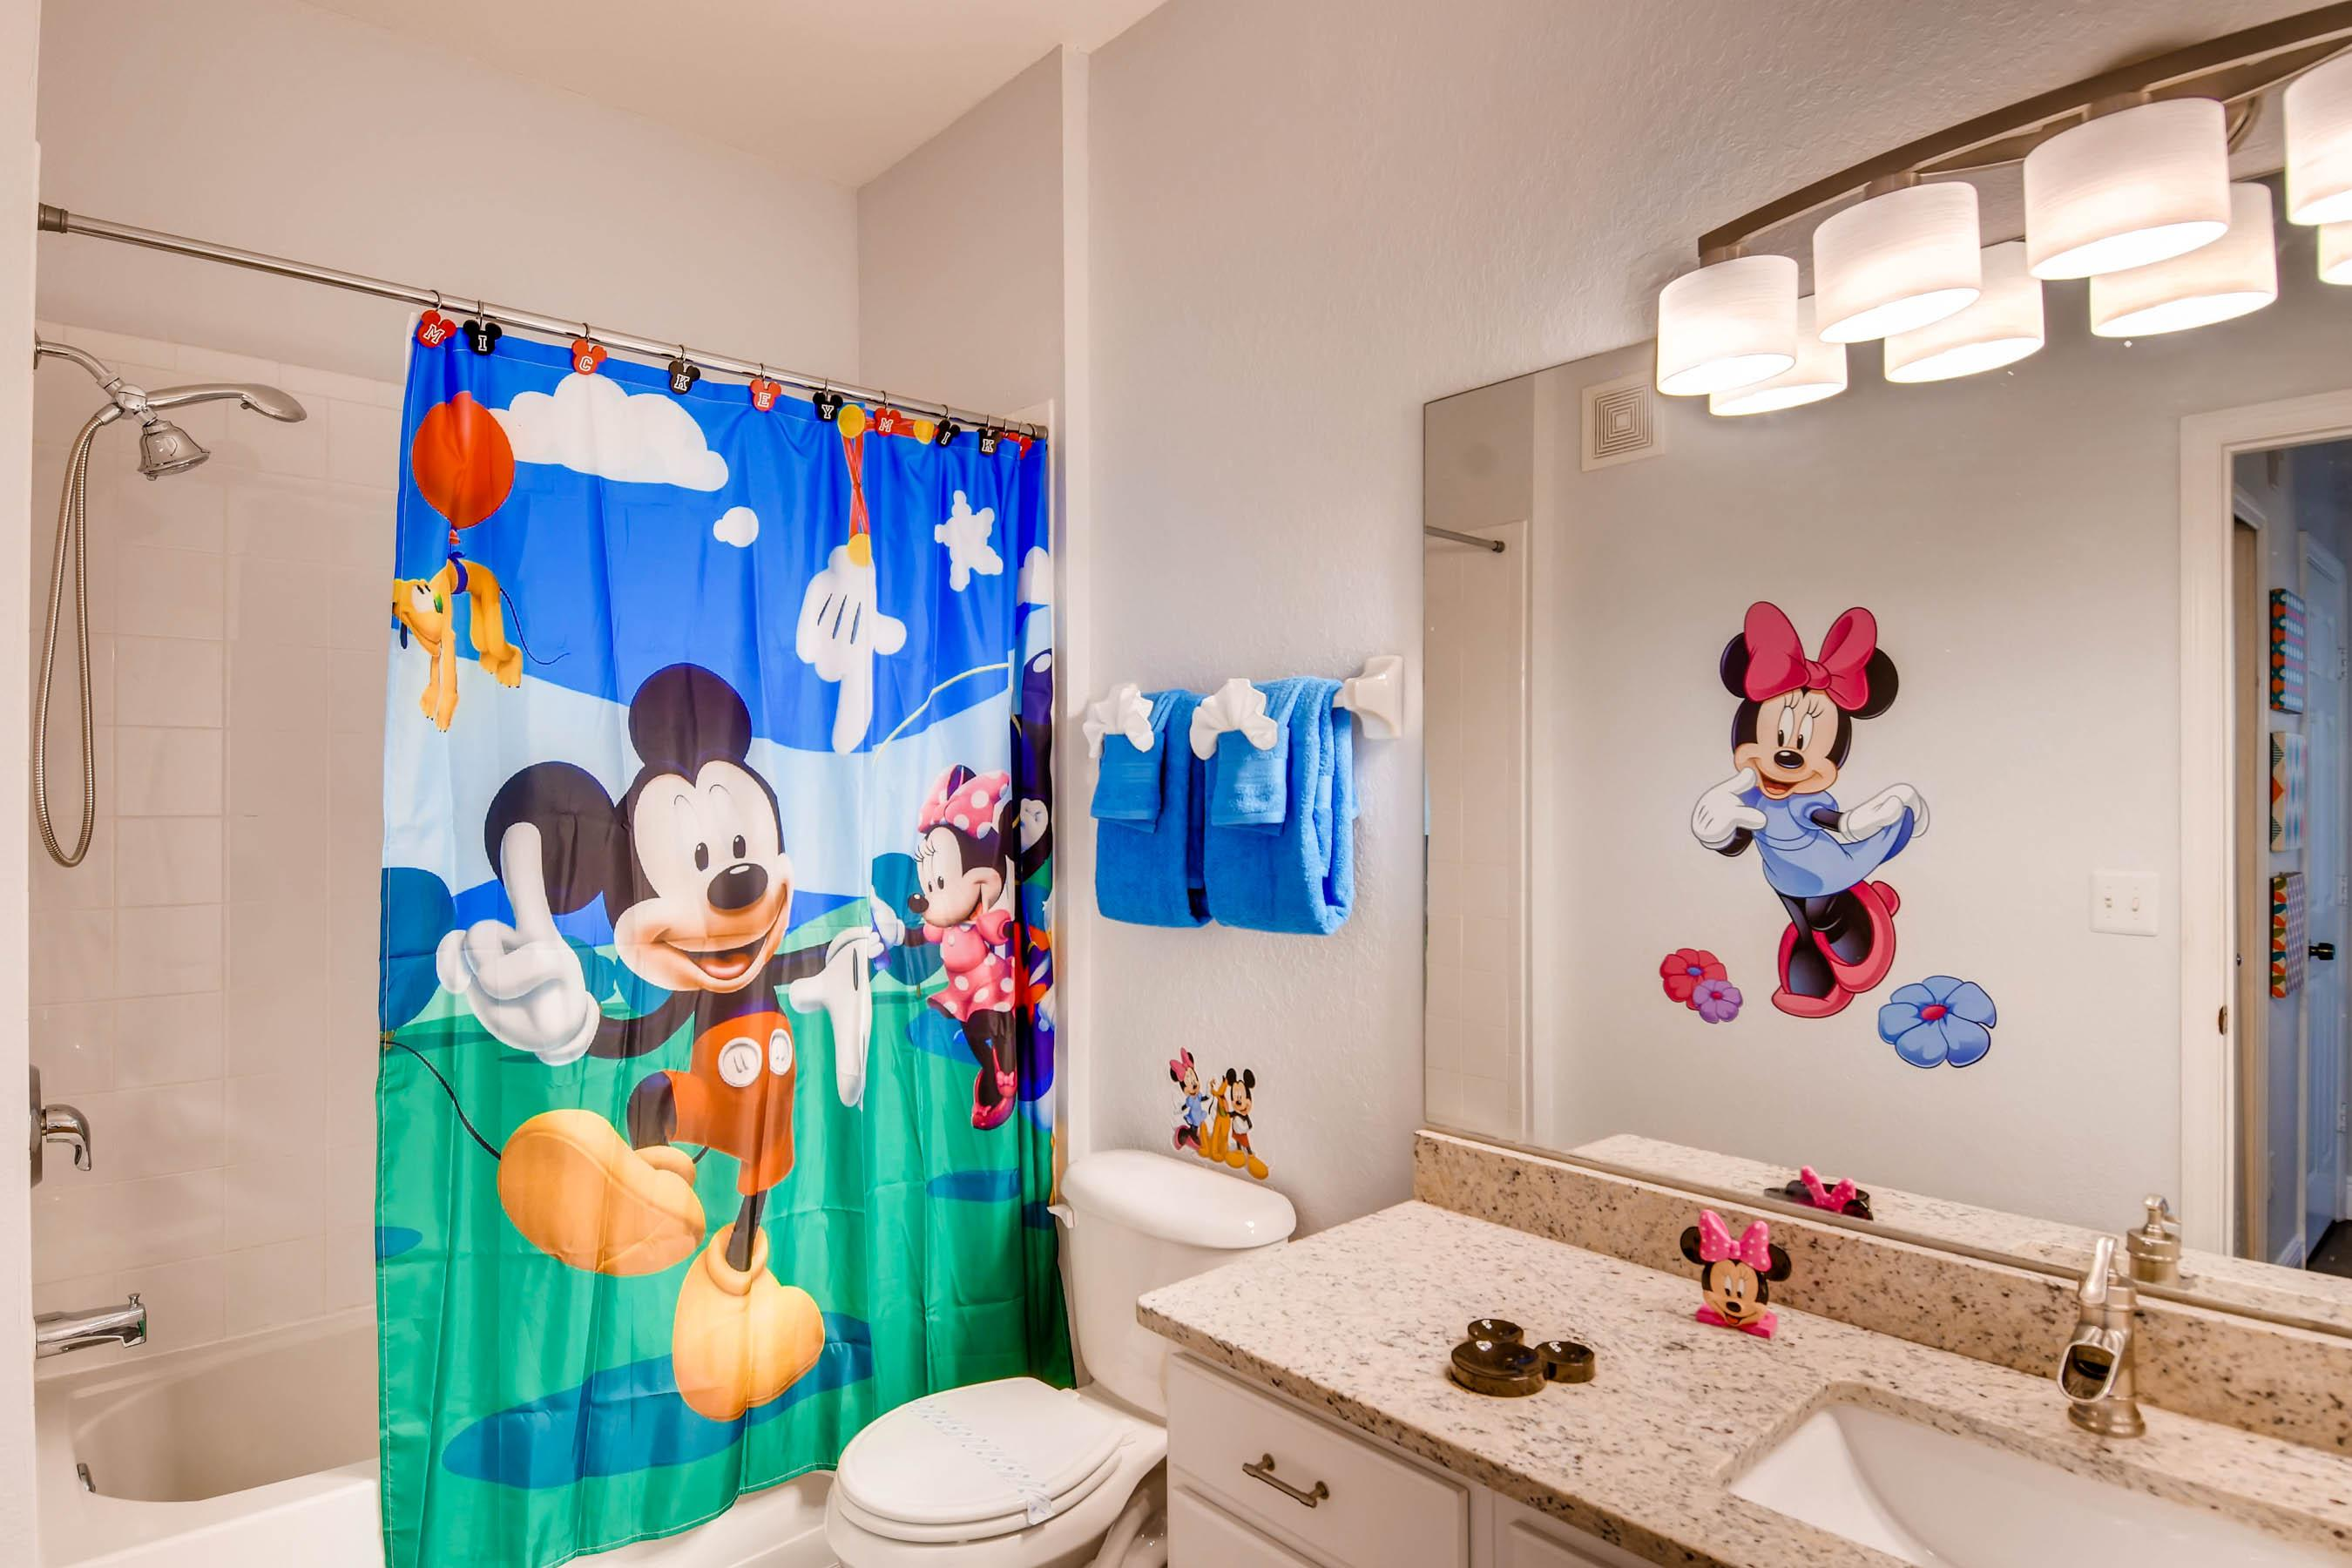 Disney themed full bath with shower/tub combo with hand shower